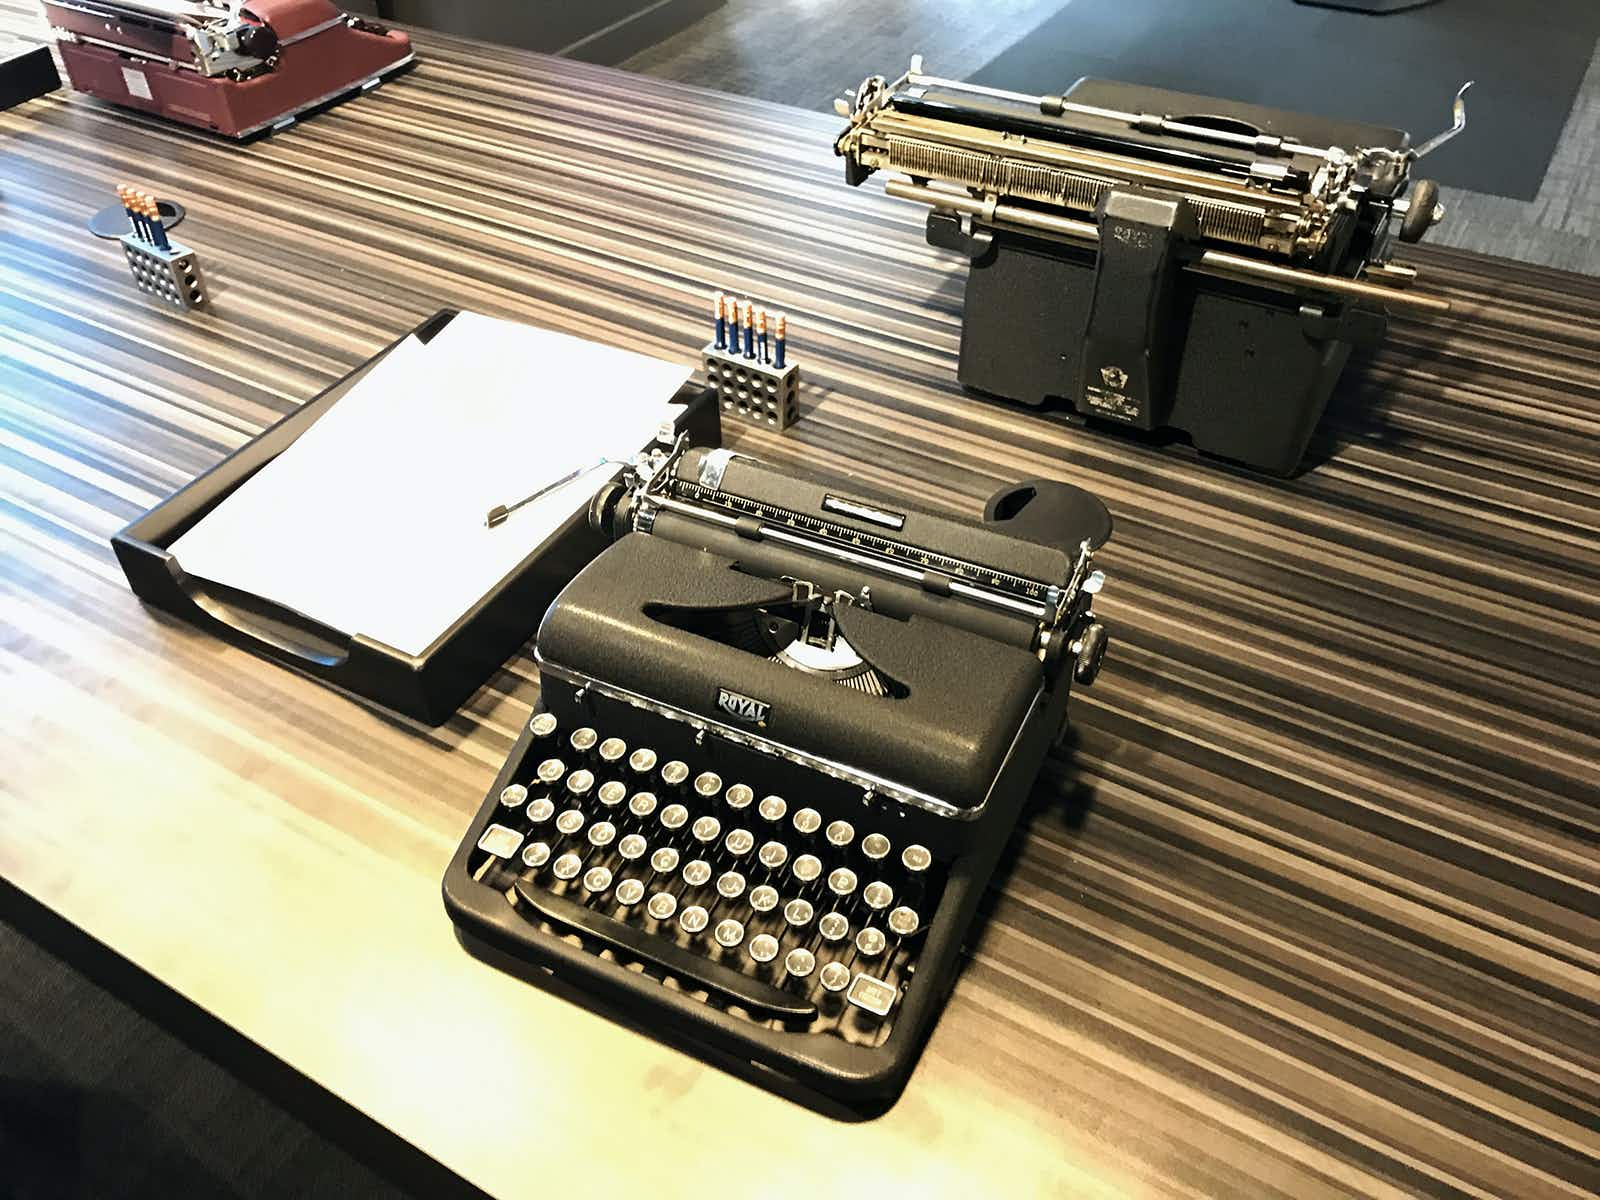 Play with words at Chicago's innovative literary museum